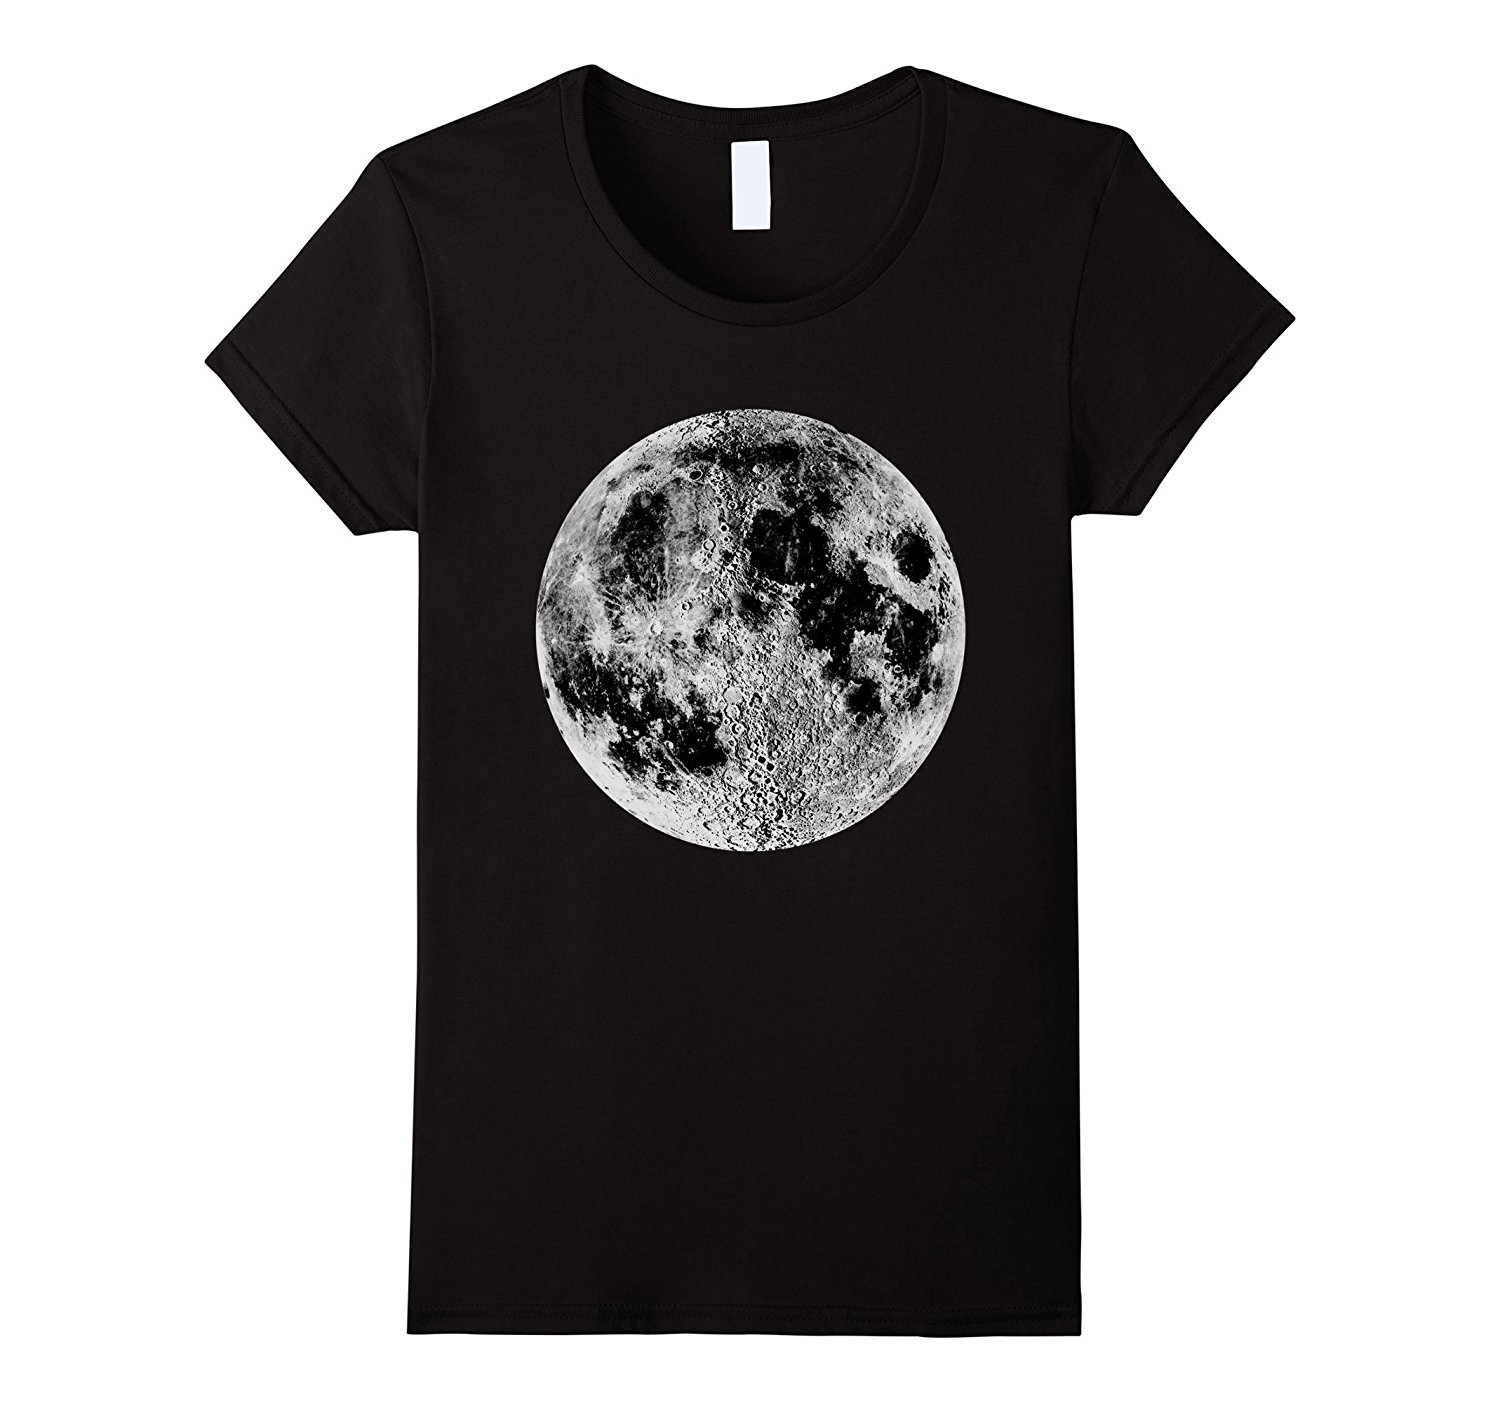 435d96c2e Full Moon T-Shirt Space Travel Science Astronaut Graphic Tee Funny Fashion  Cotton Casual T